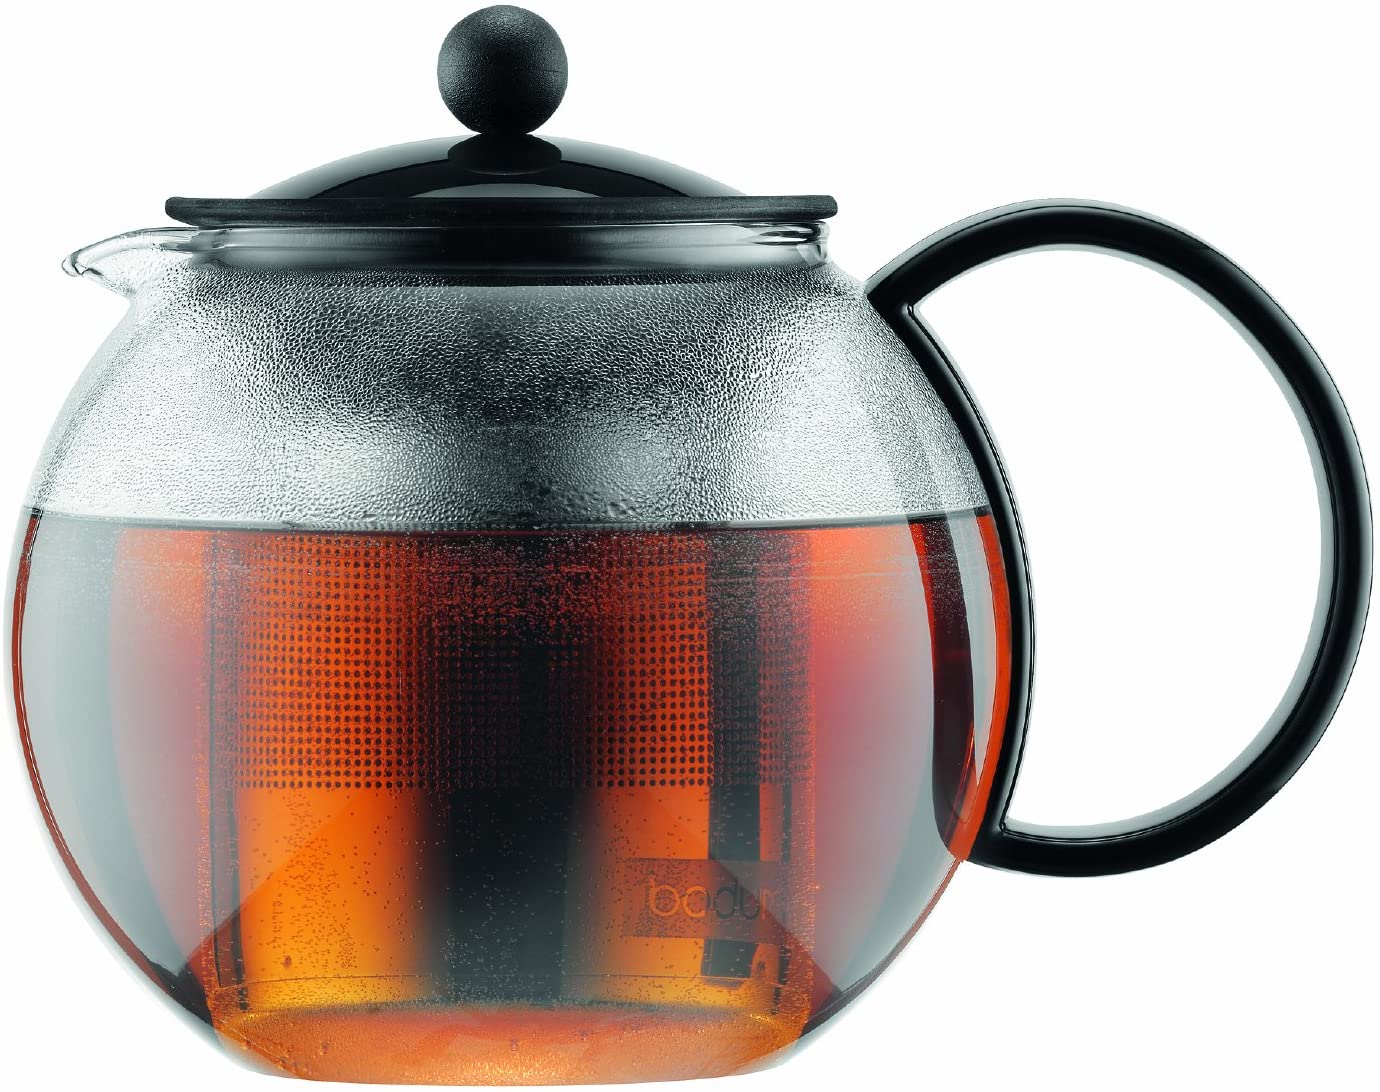 Bodum Assam Tea Press with Stainless Steel Filter, 34-Ounce